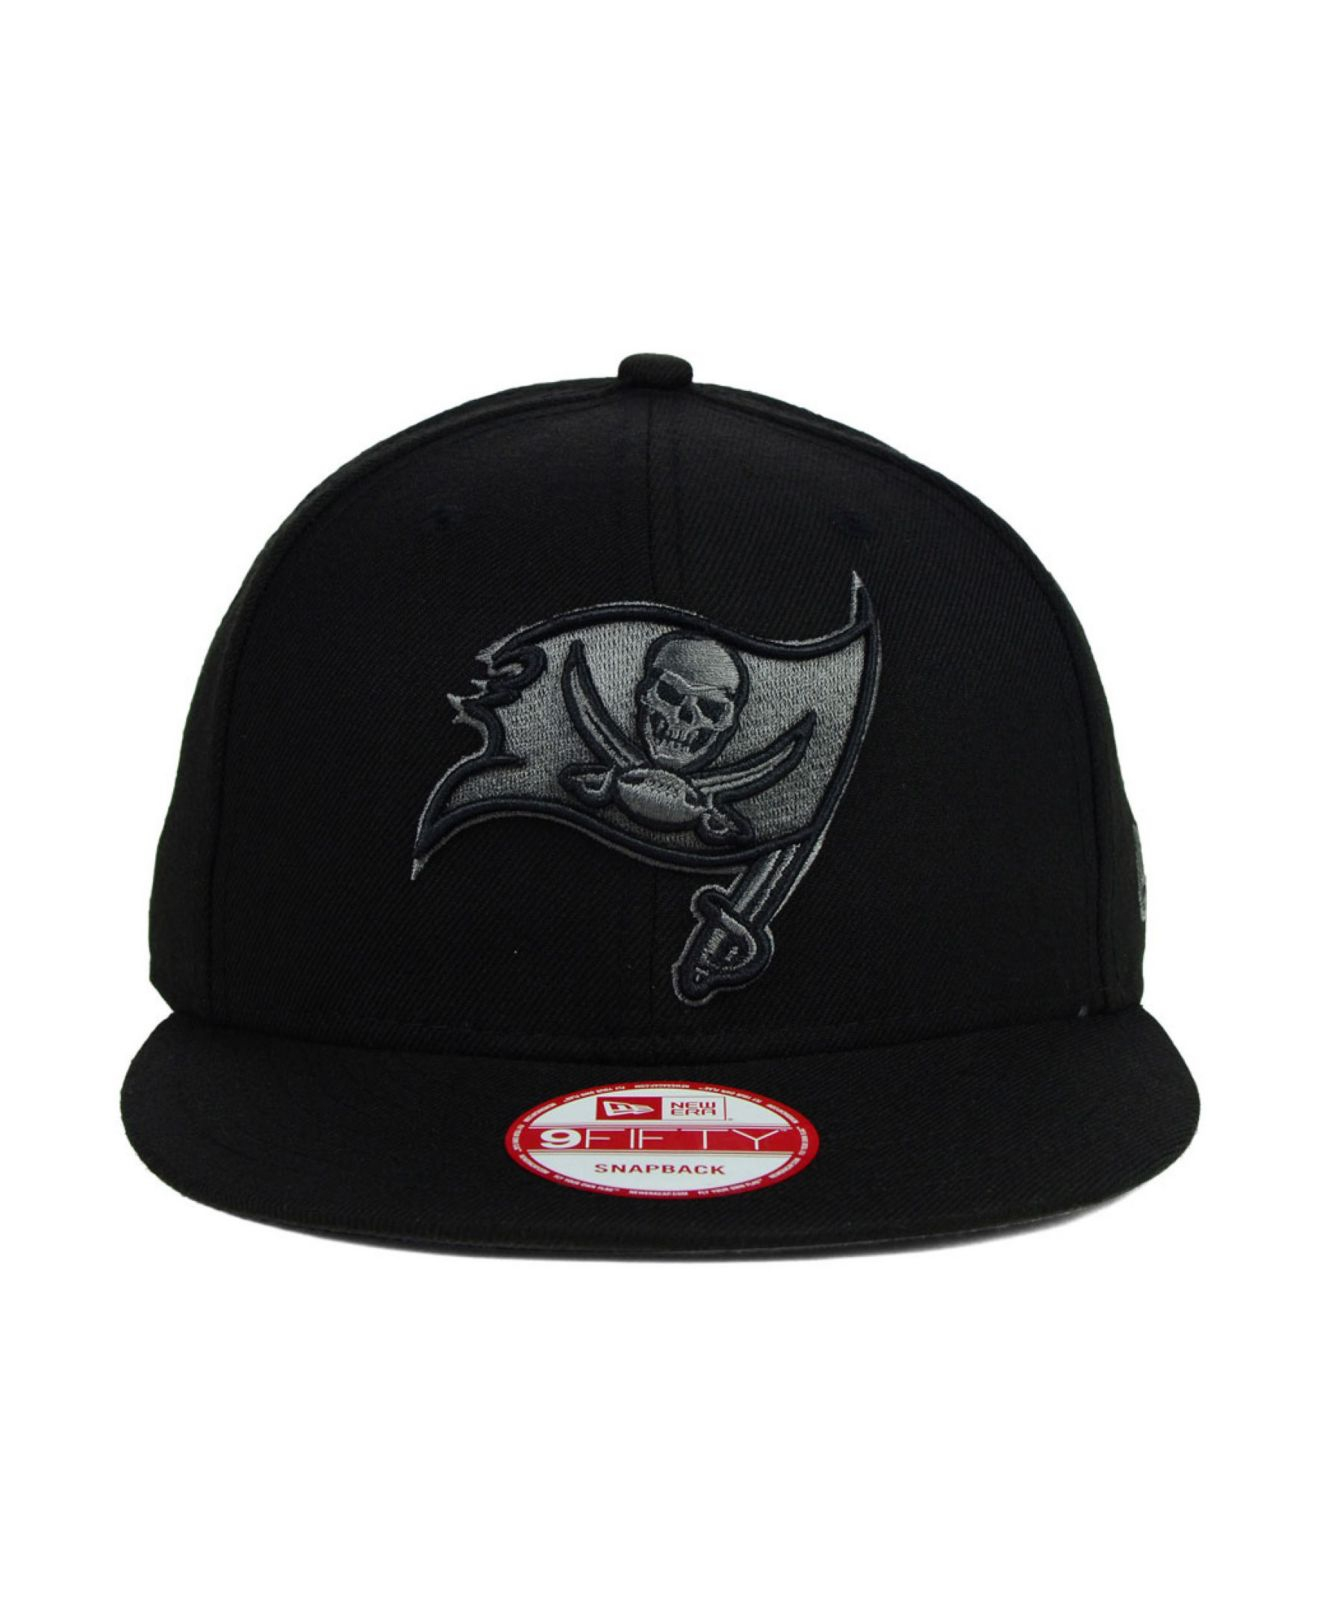 low priced ff072 5f9fd ... release date lyst ktz tampa bay buccaneers black gray 9fifty snapback  cap in d66b3 551c3